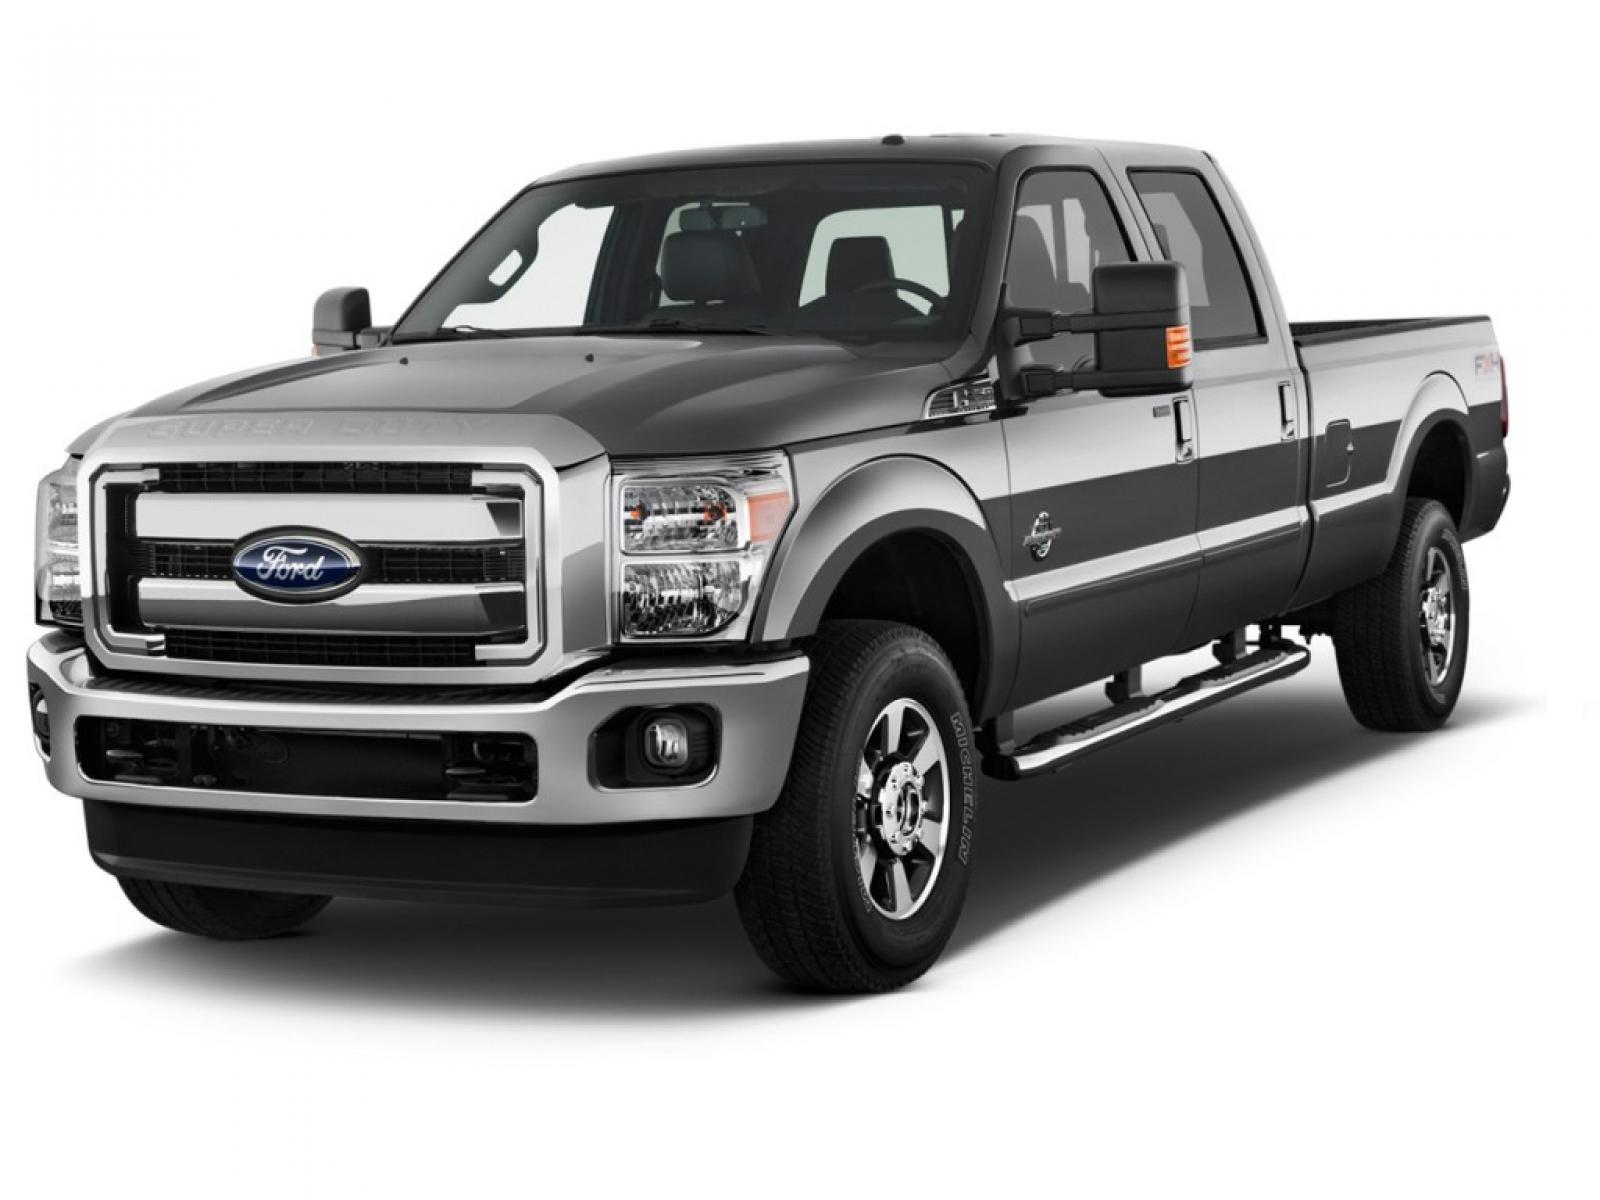 2012 ford f 350 test drive. Black Bedroom Furniture Sets. Home Design Ideas